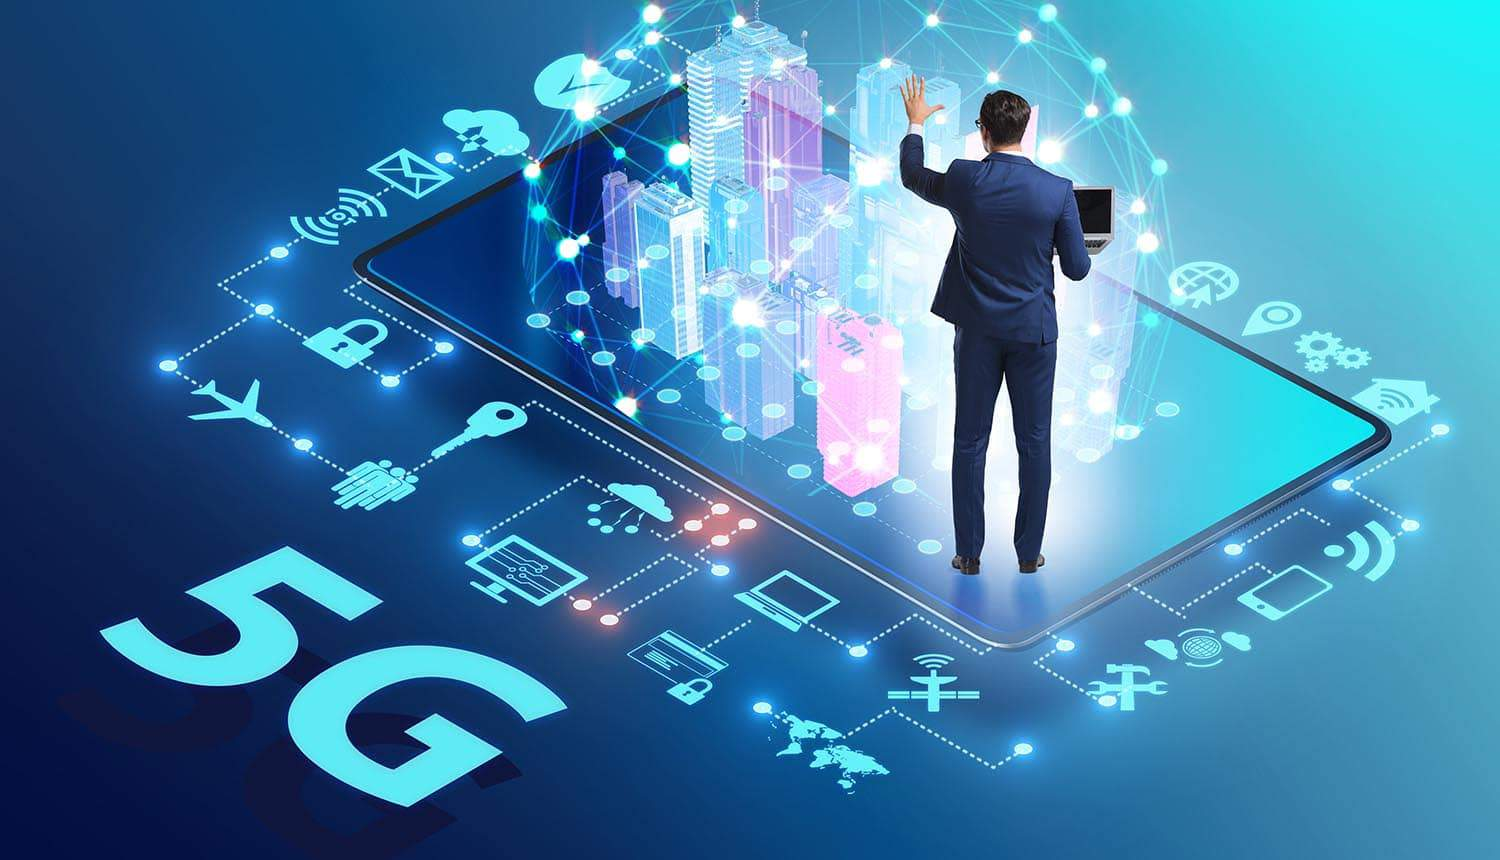 Businessman using 5G technologies showing the national strategy for 5G security